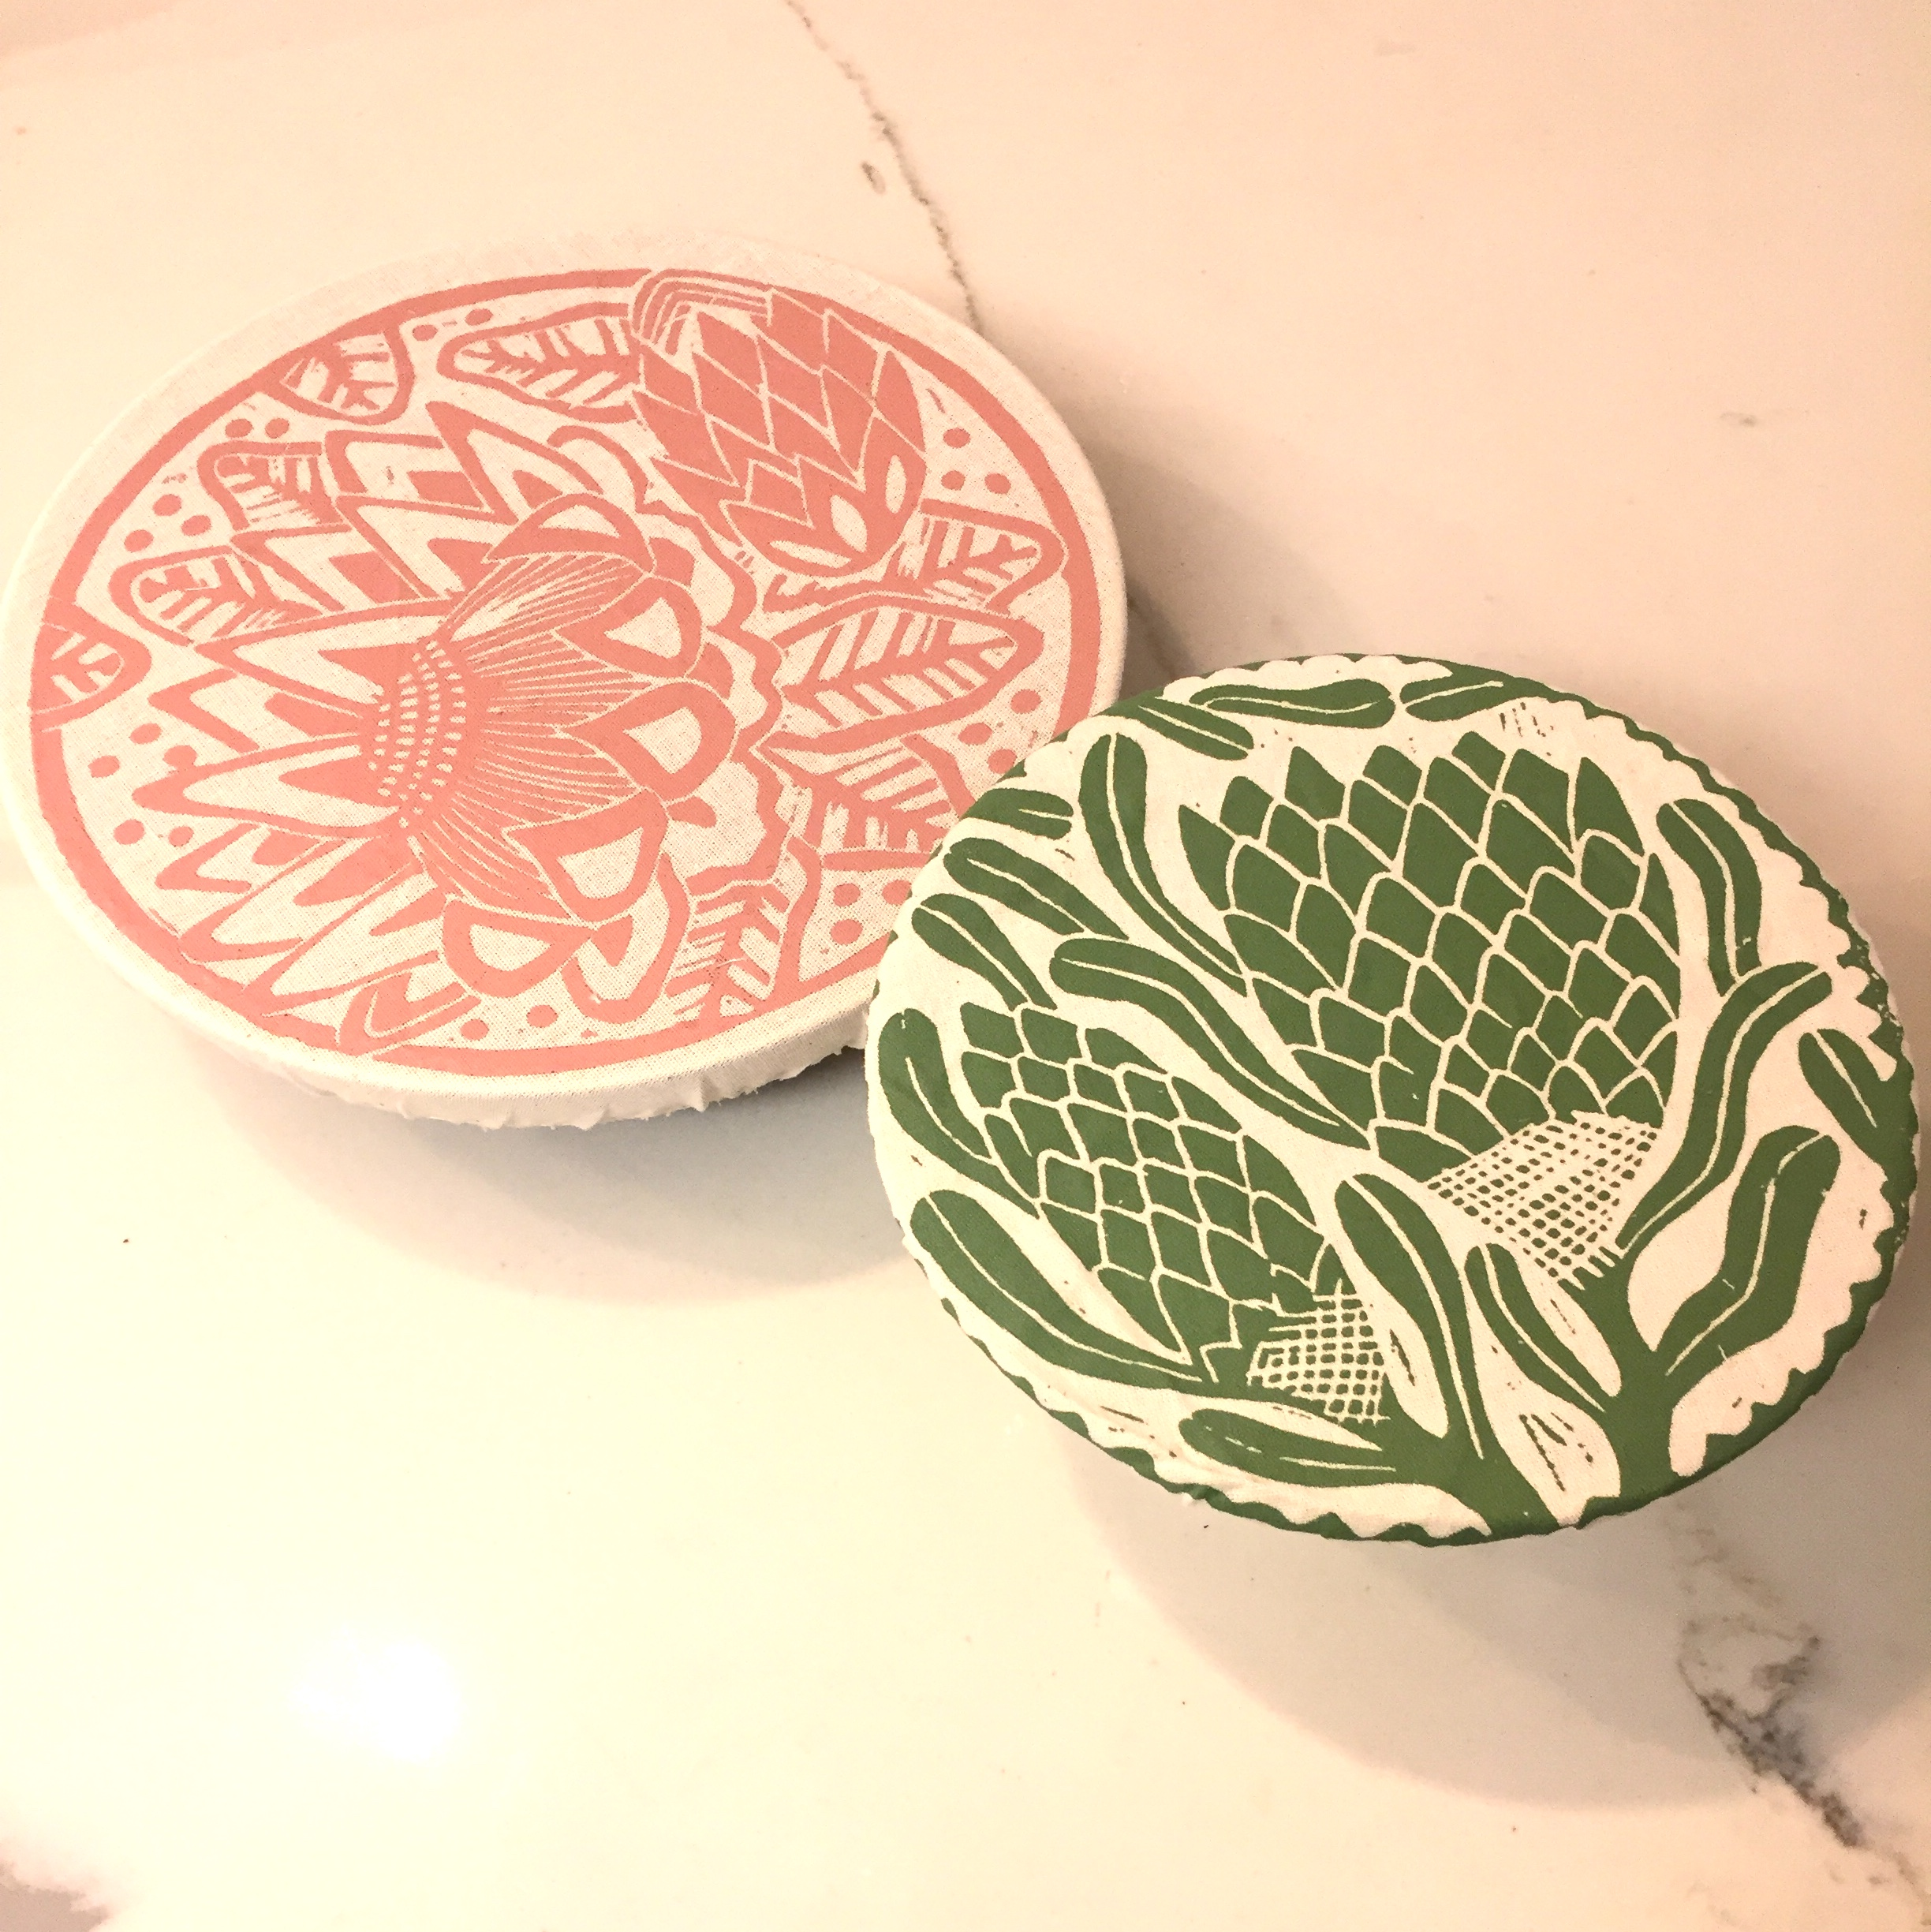 Reusable Bowl Covers - Say goodbye to plastic wrap and introduce these fine products into your life. They look like shower caps but are designed to cover bowls and store leftovers. Mine came from a friend who traveled to South Africa so they're extra special but you can order yours from Amazon and make up a romantic story, if you choose.